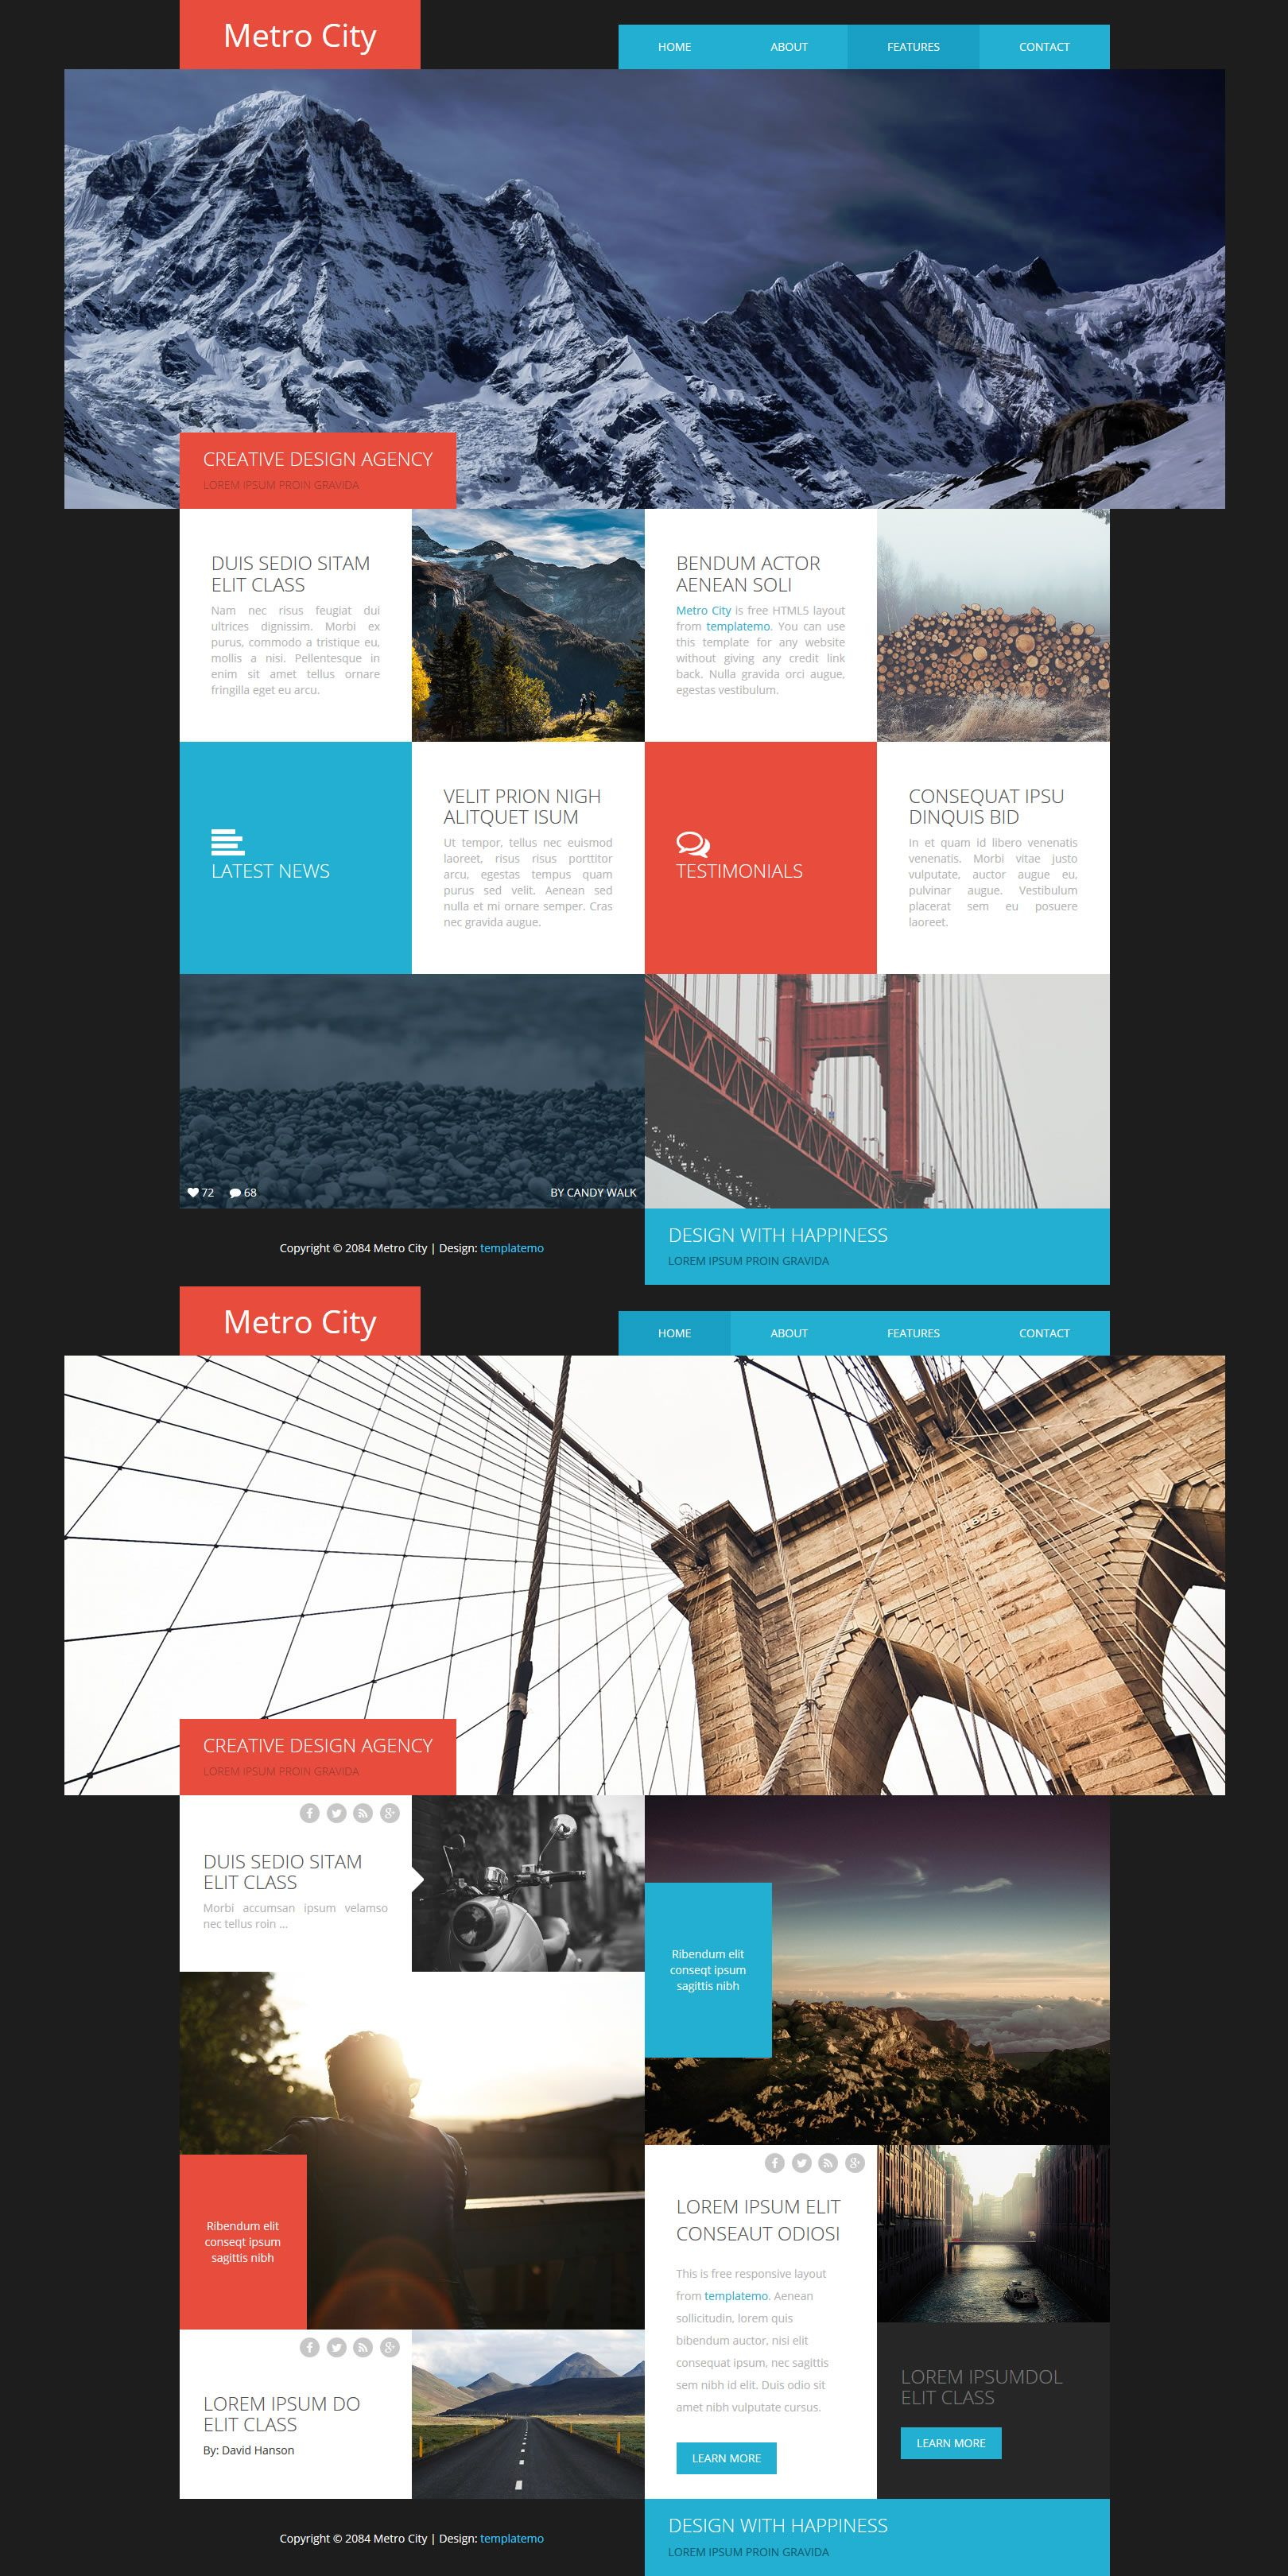 Metro City Metro Style Grid Blocks For Different Contents This Template Incorporates Bootstrap V3 3 5 Responsive Design